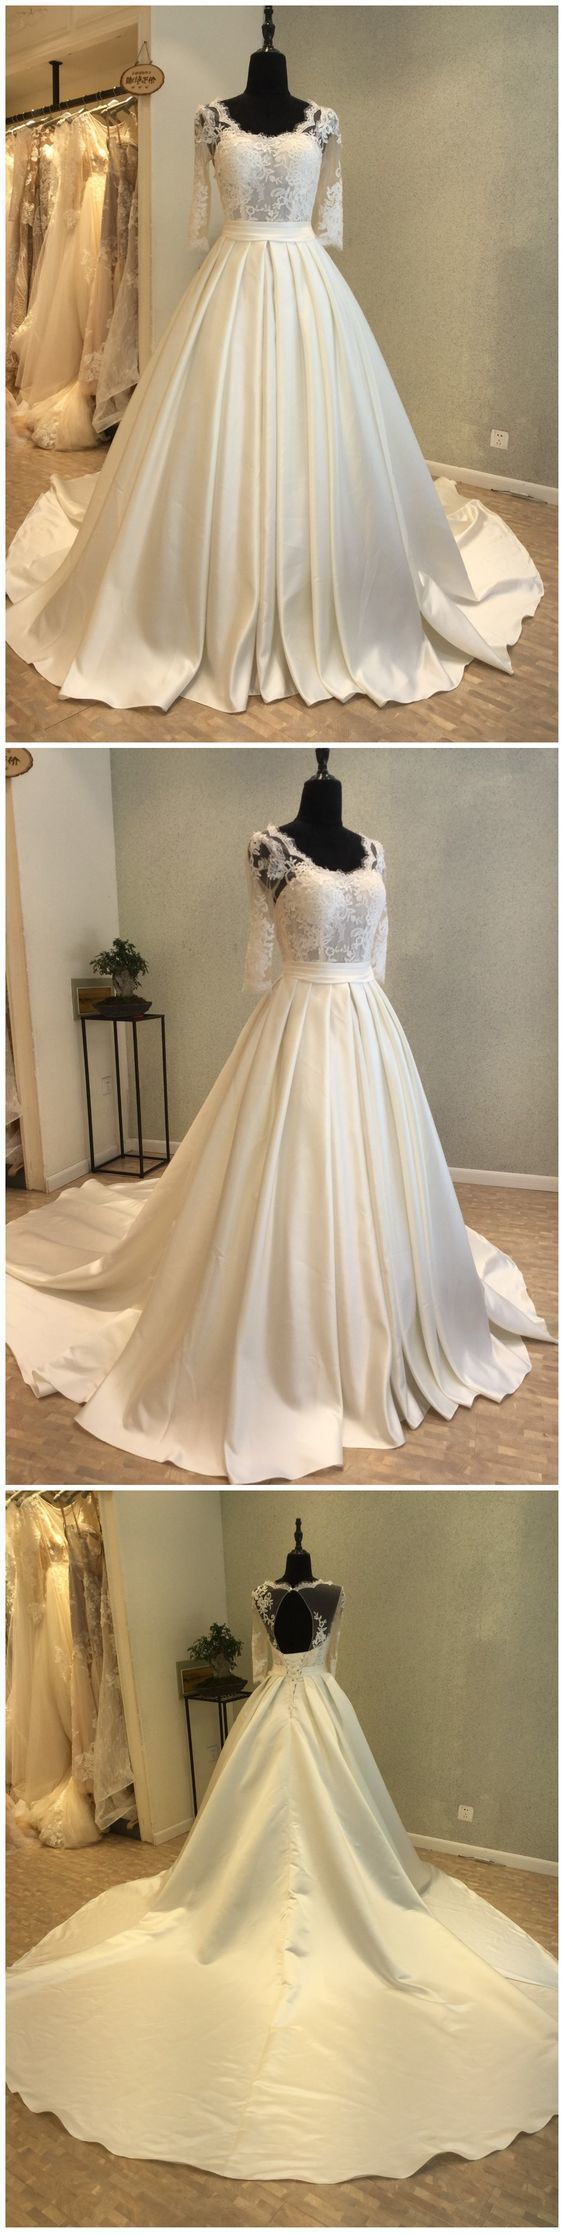 Short Sleeves Satin and Lace Long Prom Gown, Lovely Party Dress 2019, Wedding